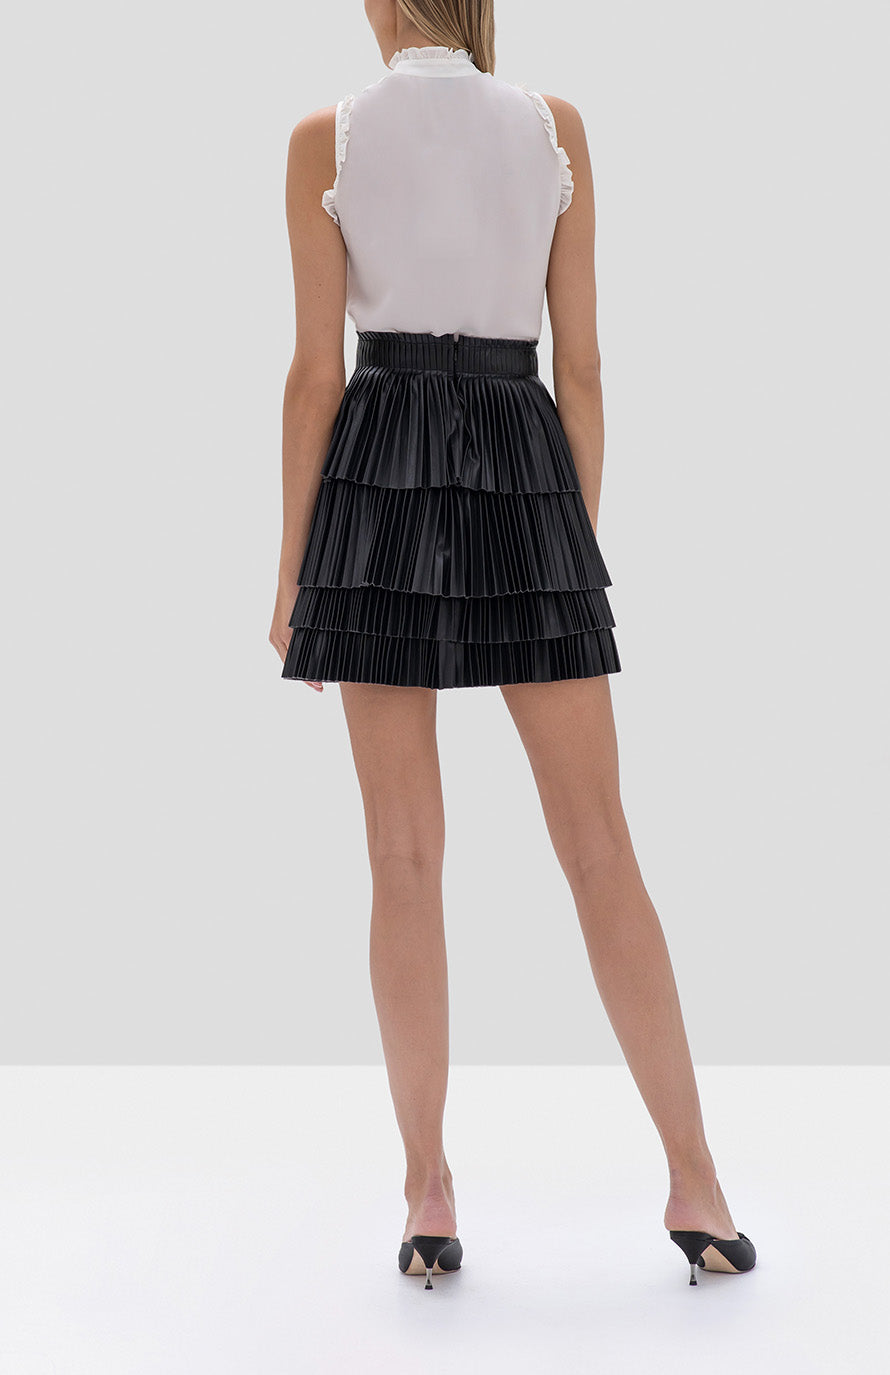 Alexis Lois Top in Off White and Briana Skirt in Black from the Fall Winter 2019 Ready To Wear Collection - Rear View